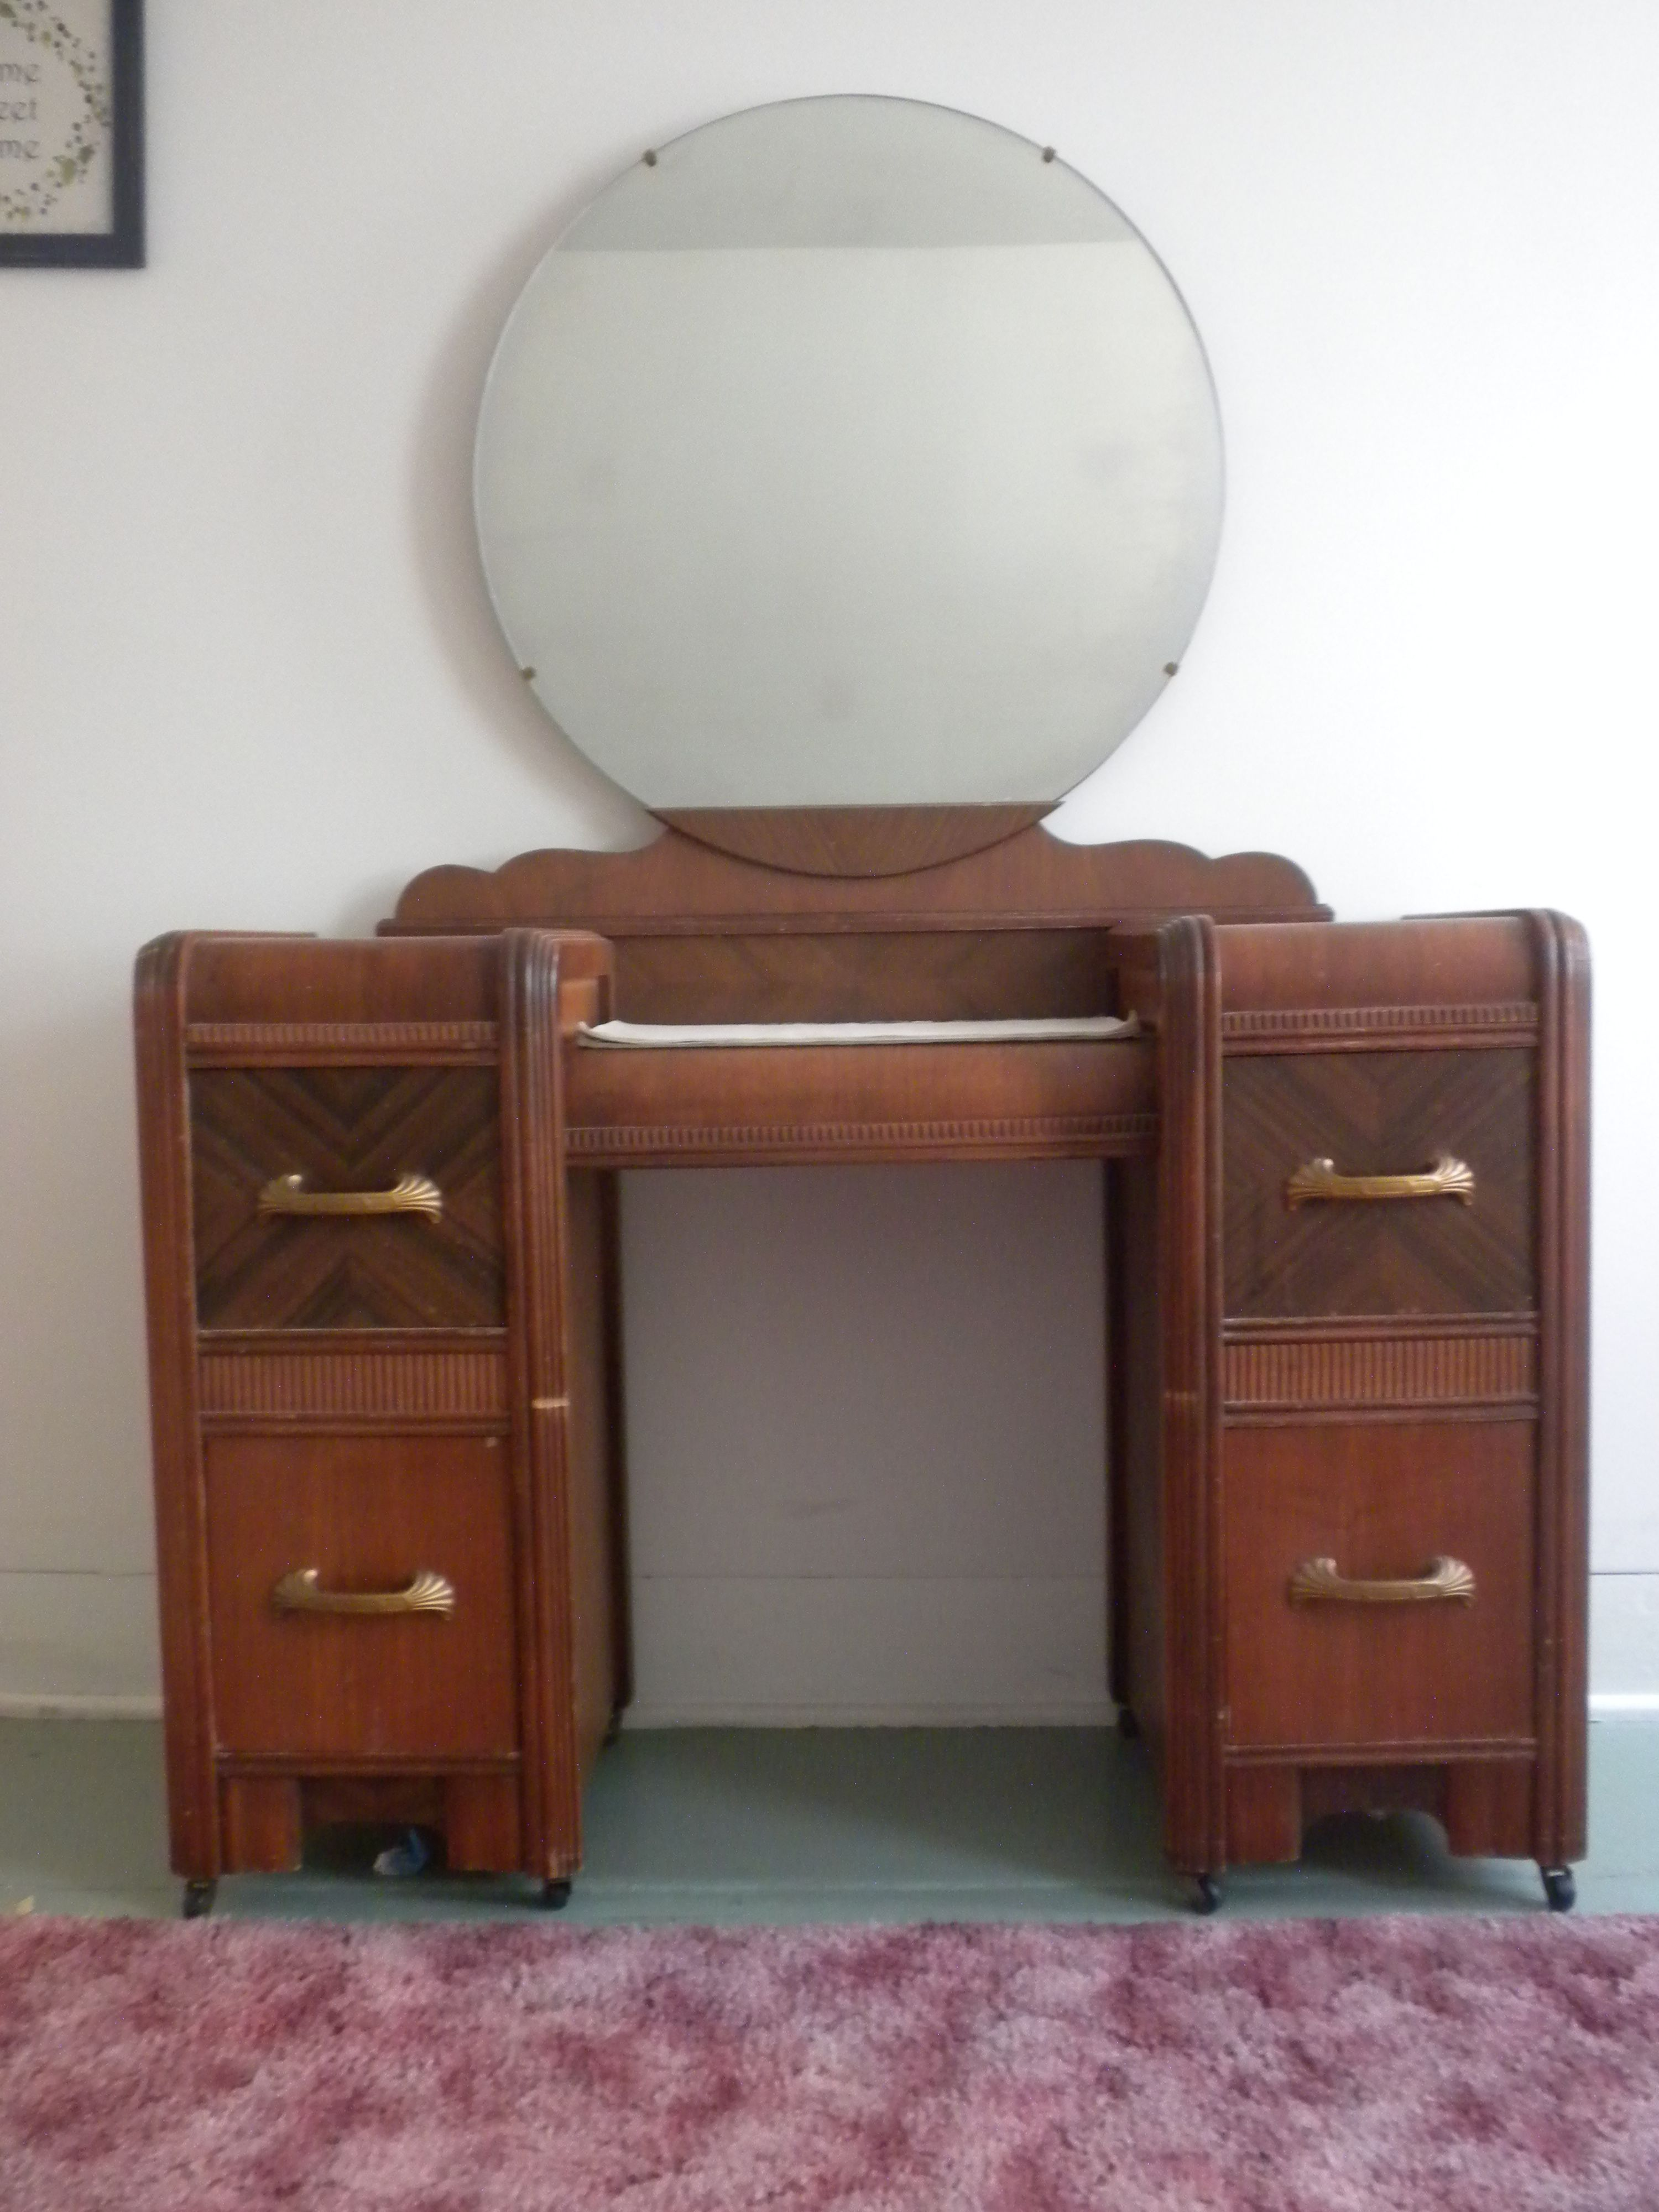 I Have An Art Deco Waterfall Style Bedroom Set Vanity With